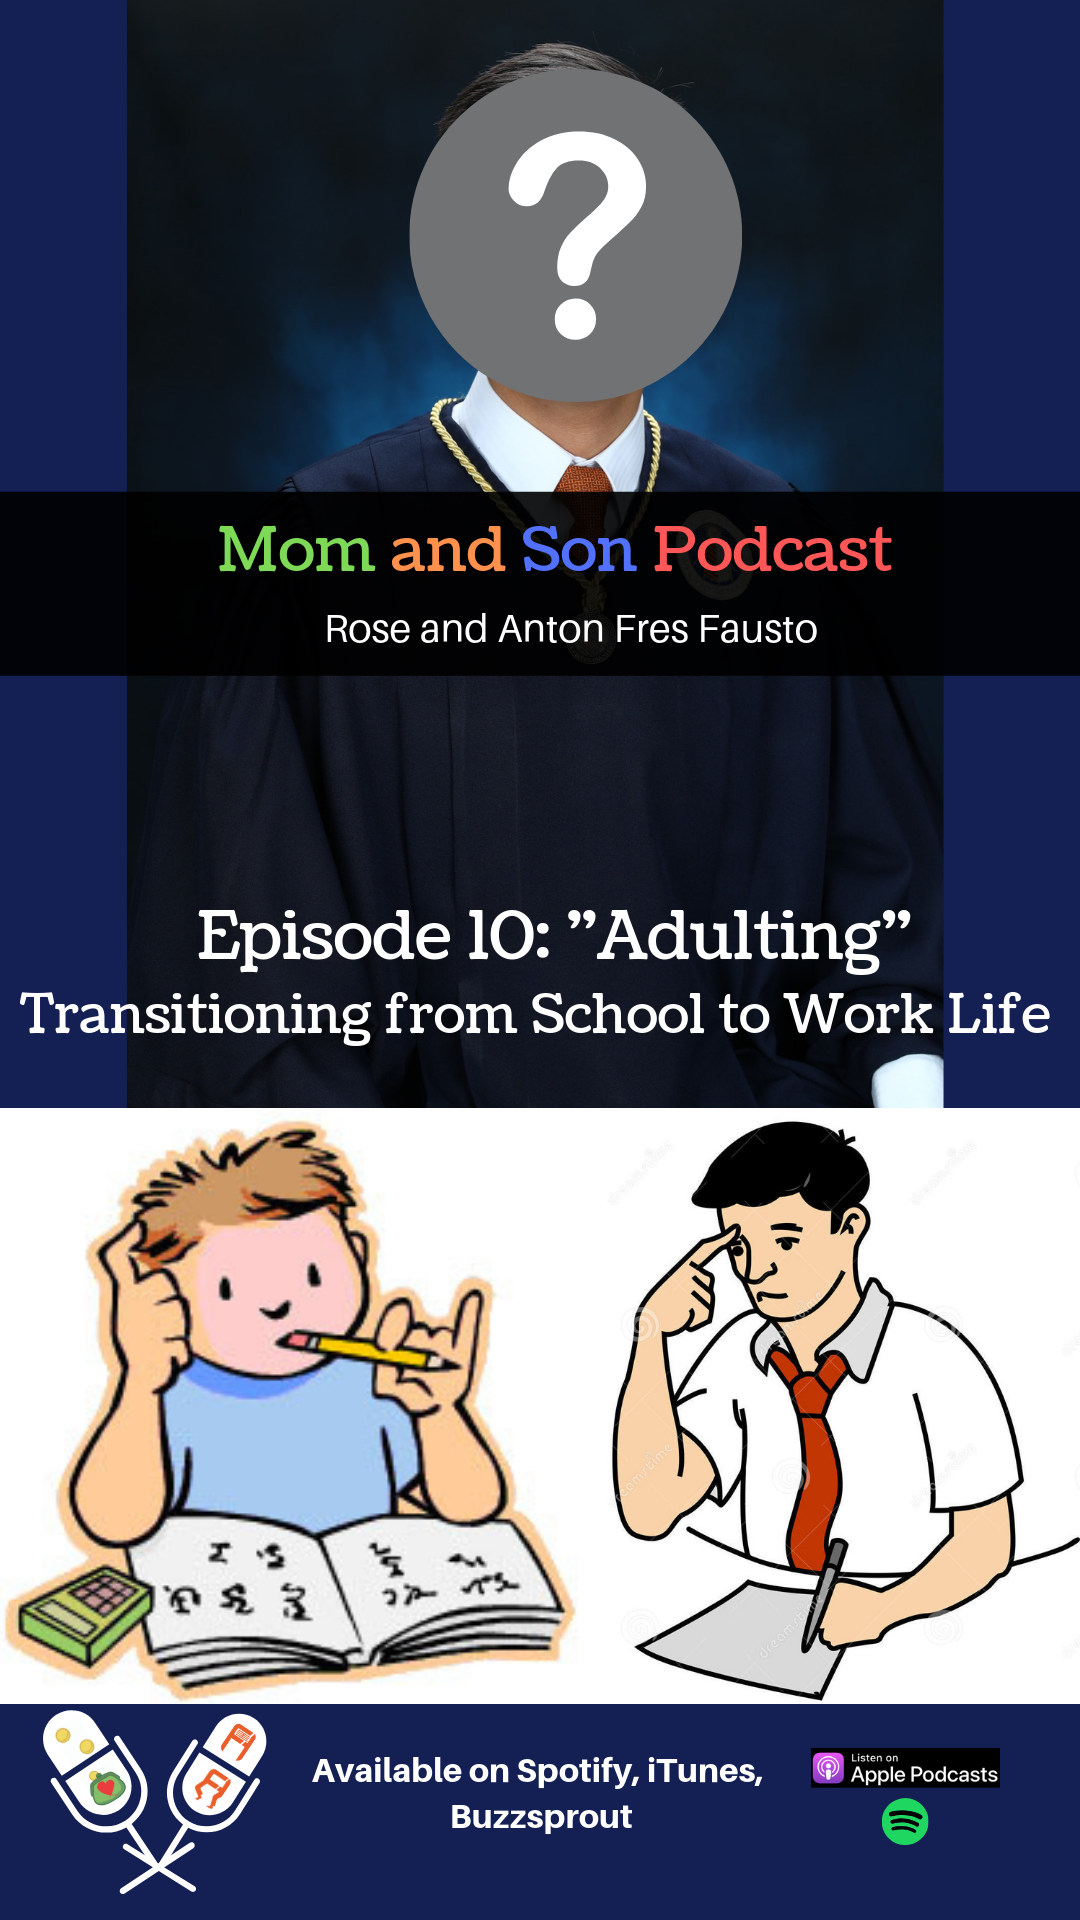 08-mom-and-son-podcast-episode-10